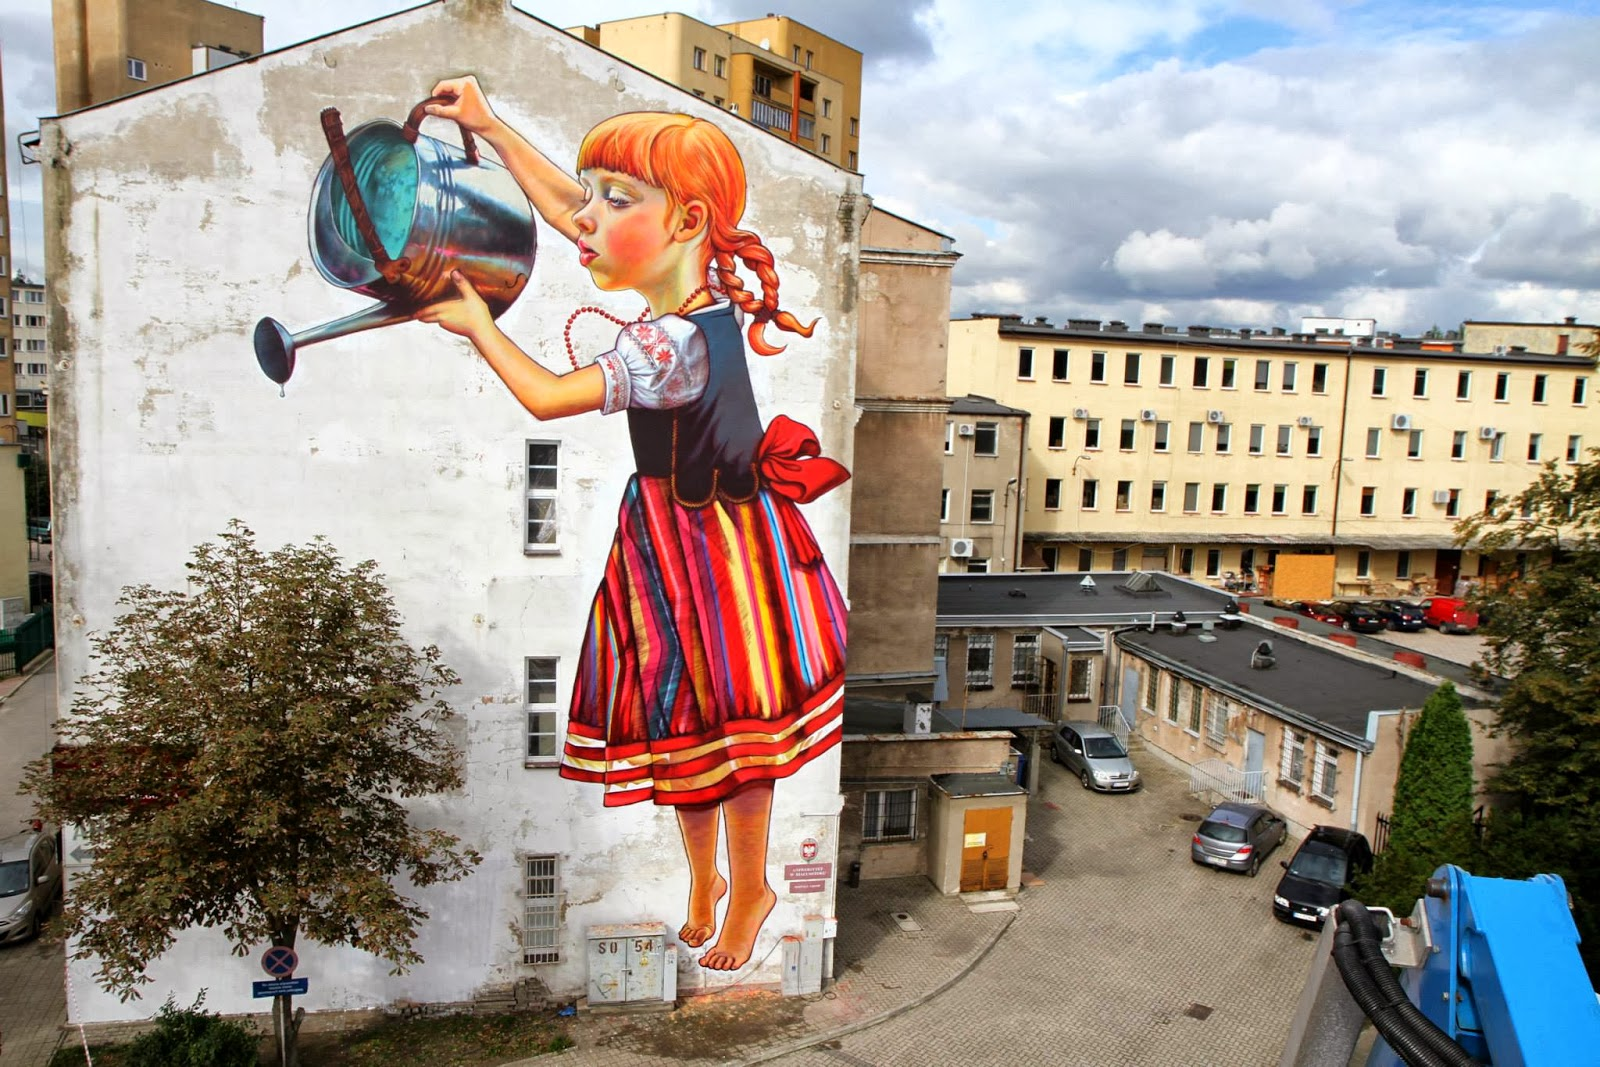 natalia rak new mural for folk on the street bia ystok